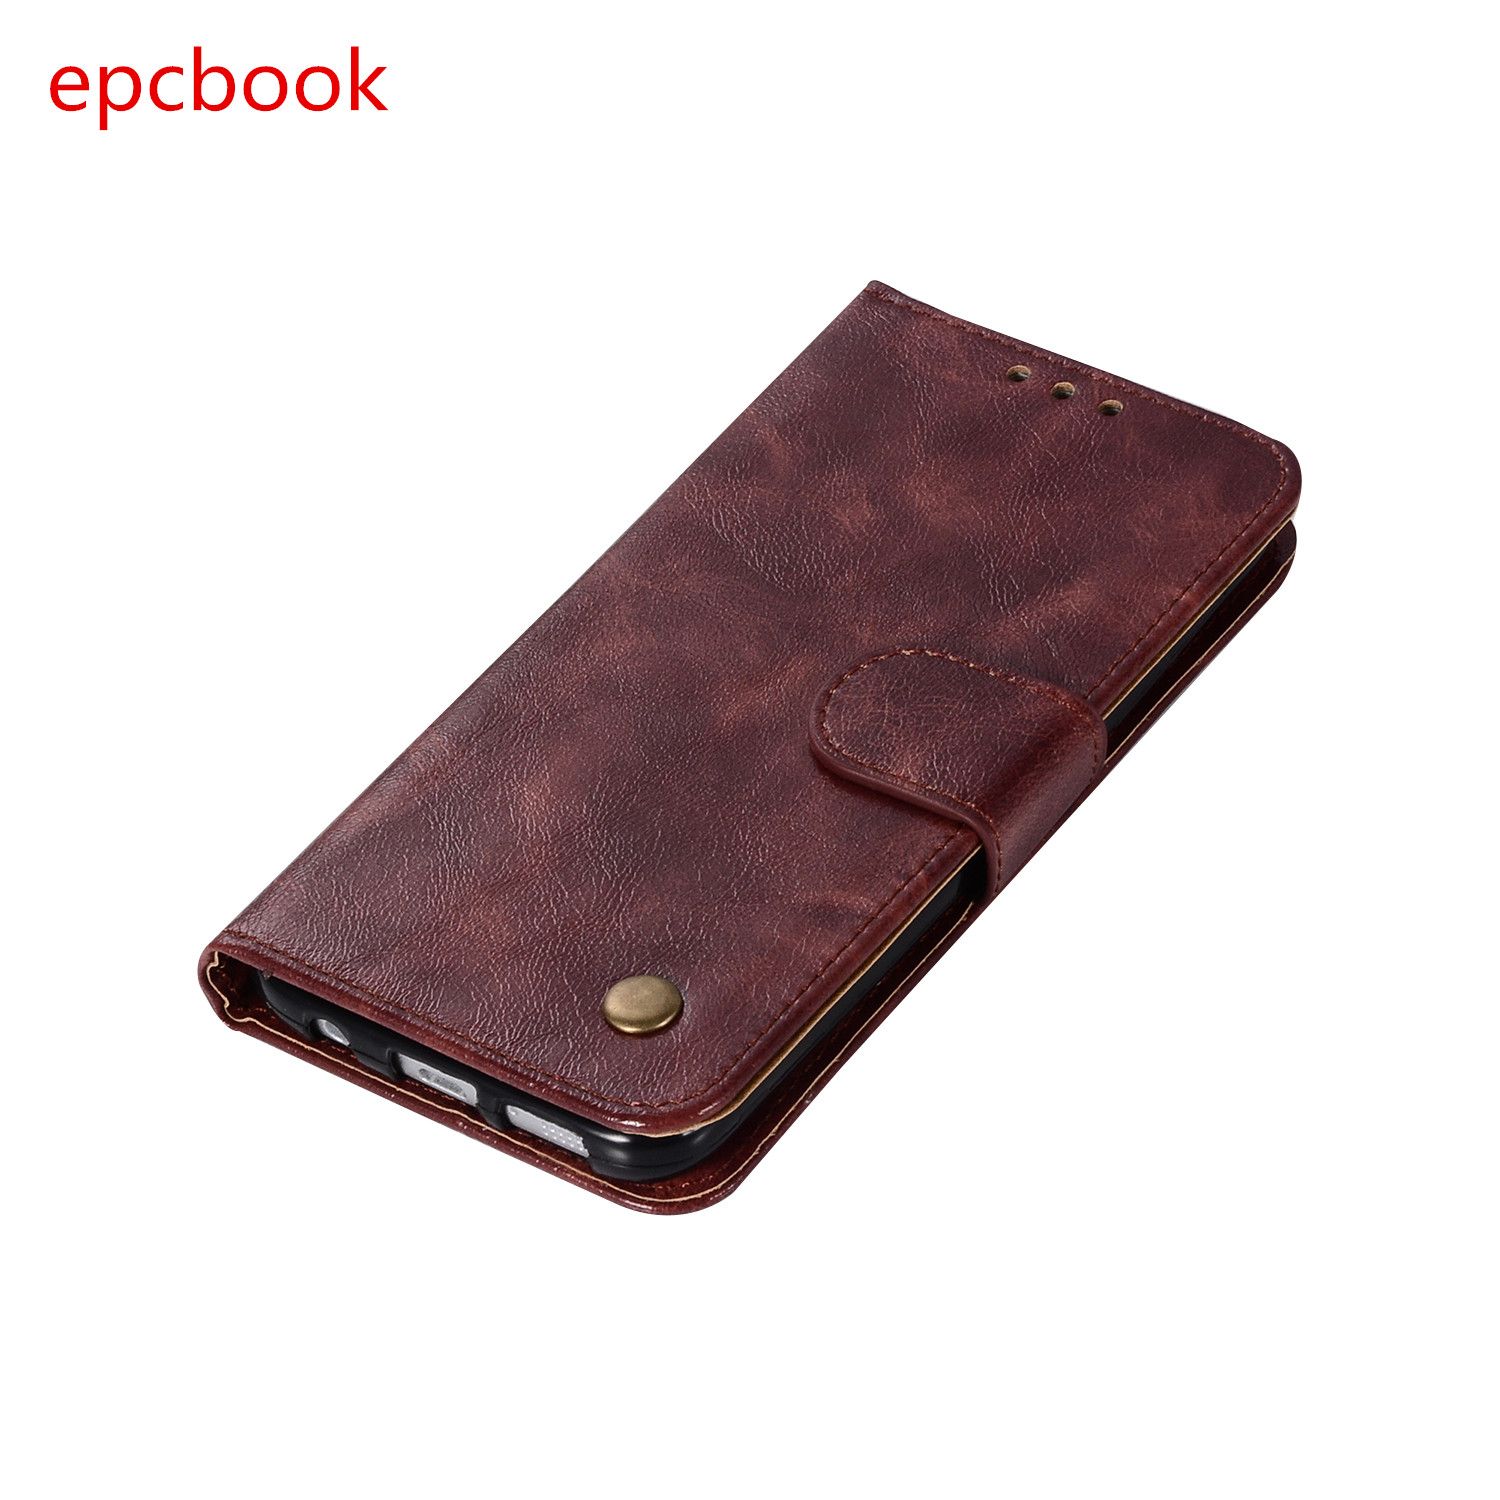 epcbook plain Flip Vintage Leisure Phone Case For Sumsung Galaxy S6 S6edge s5 Case Shell For Galaxy S7Edge S7 Stent Wallet Case